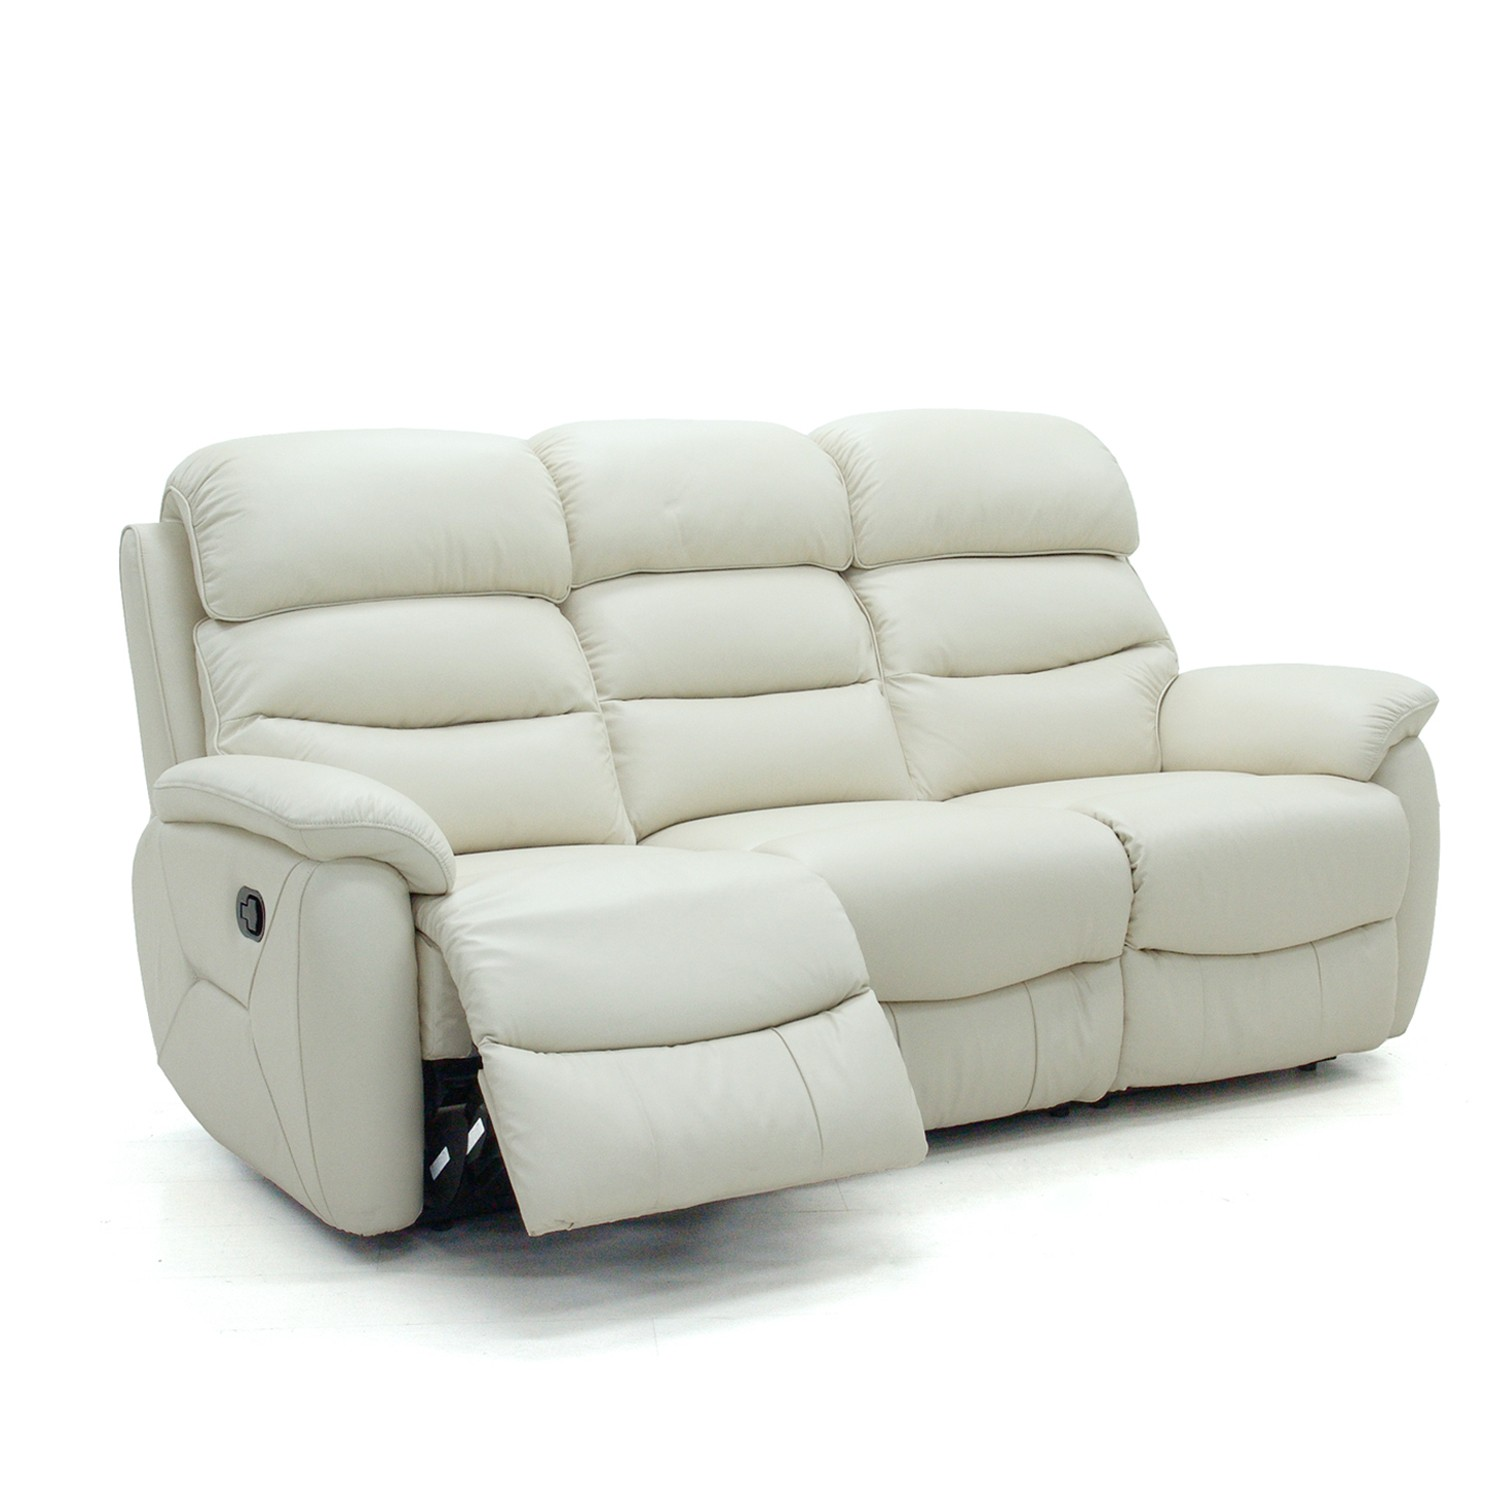 recliner sofa girona 3 str man recliner. loading zoom VPTZXEO